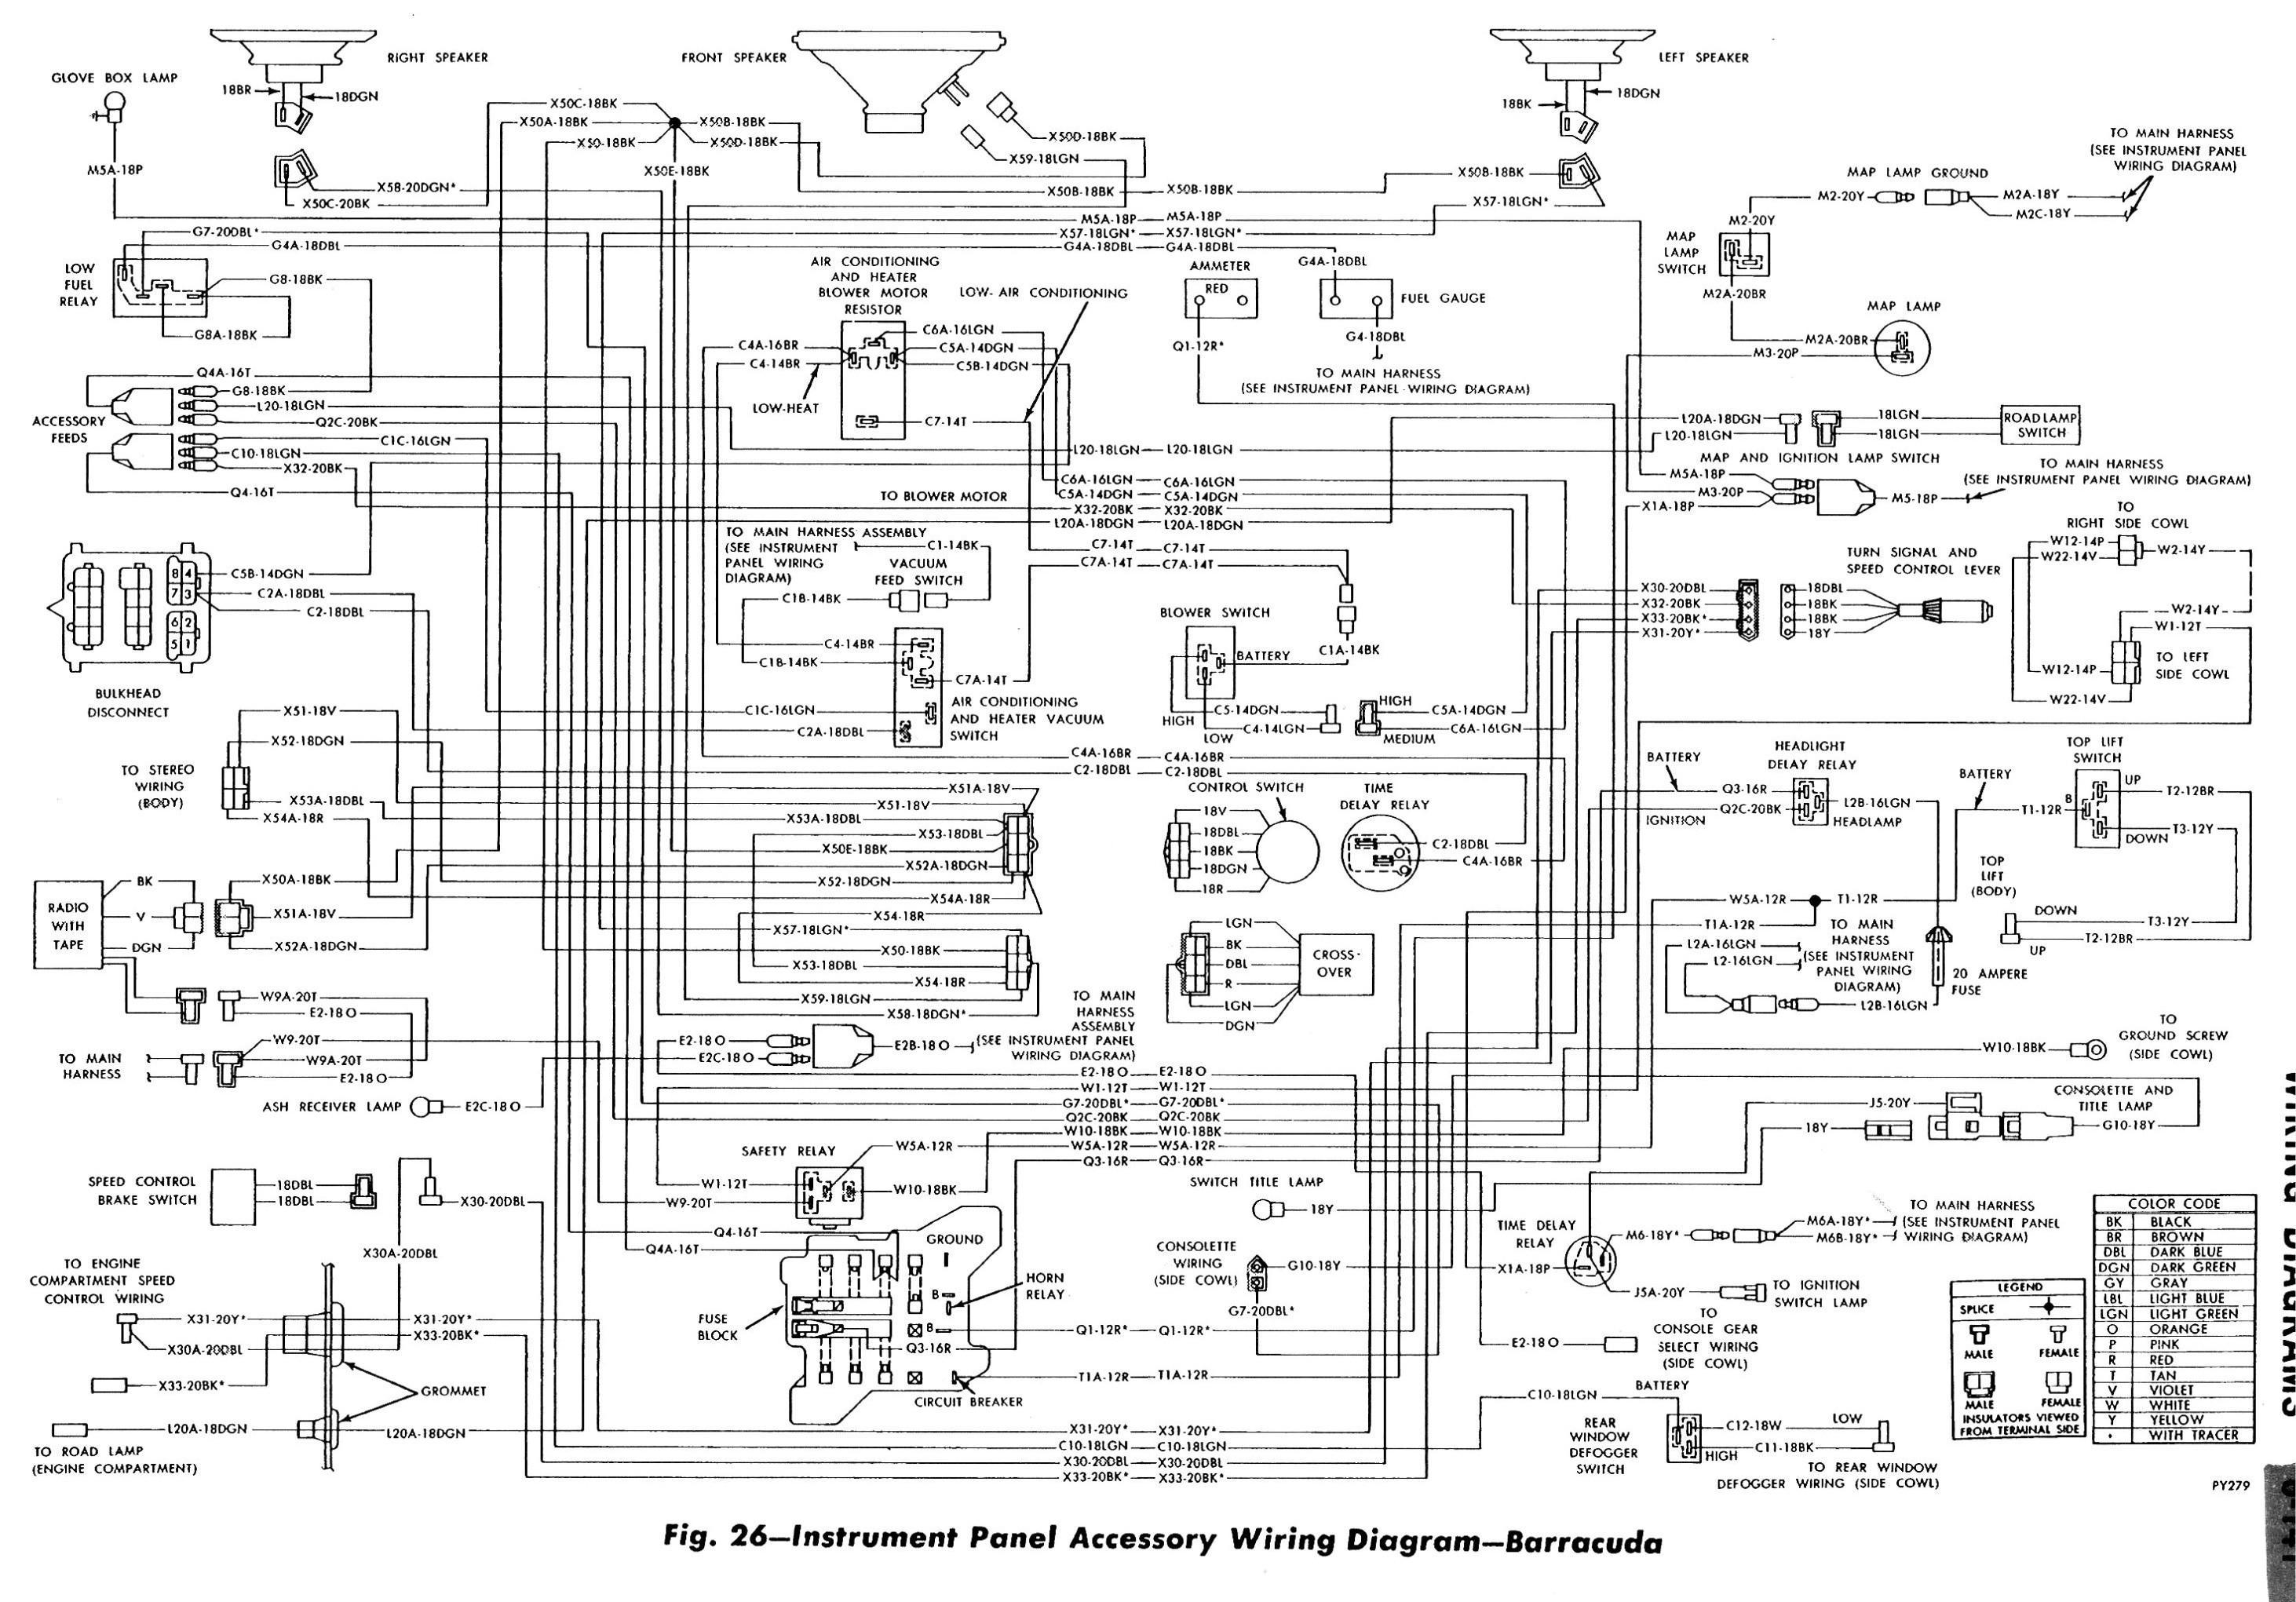 1970 Plymouth Roadrunner Fuse Box Wiring Diagram Academic Academic Lastanzadeltempo It